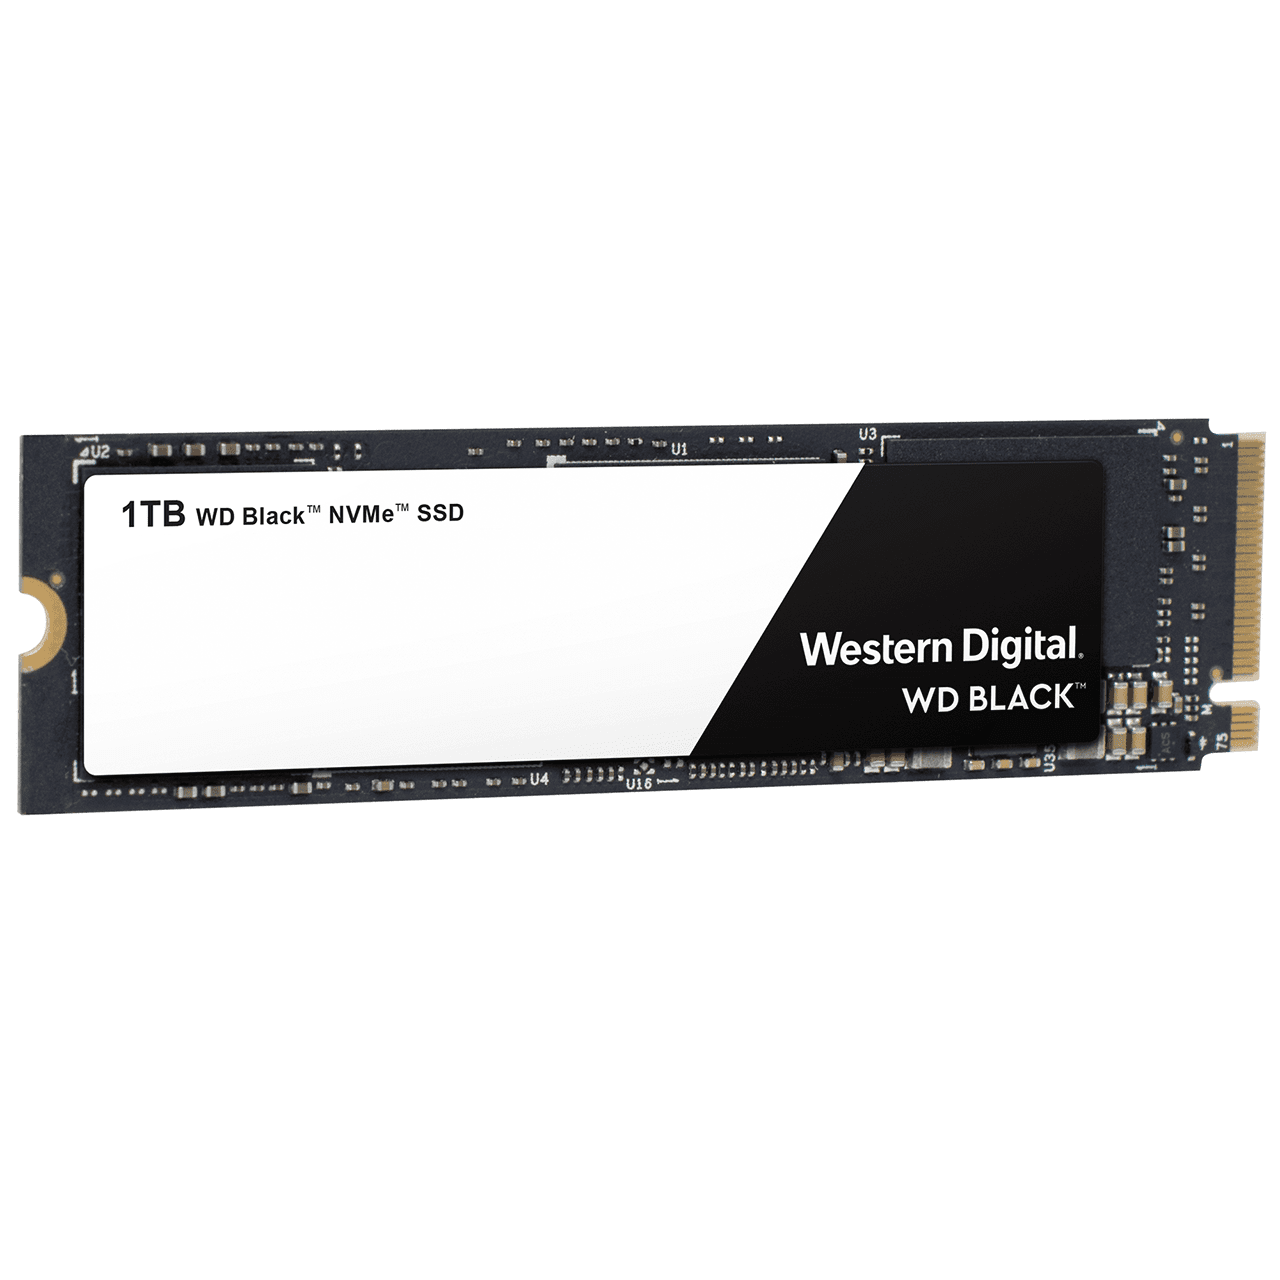 product-hero-image-wd-black-nvme-ssd-western-digital-main